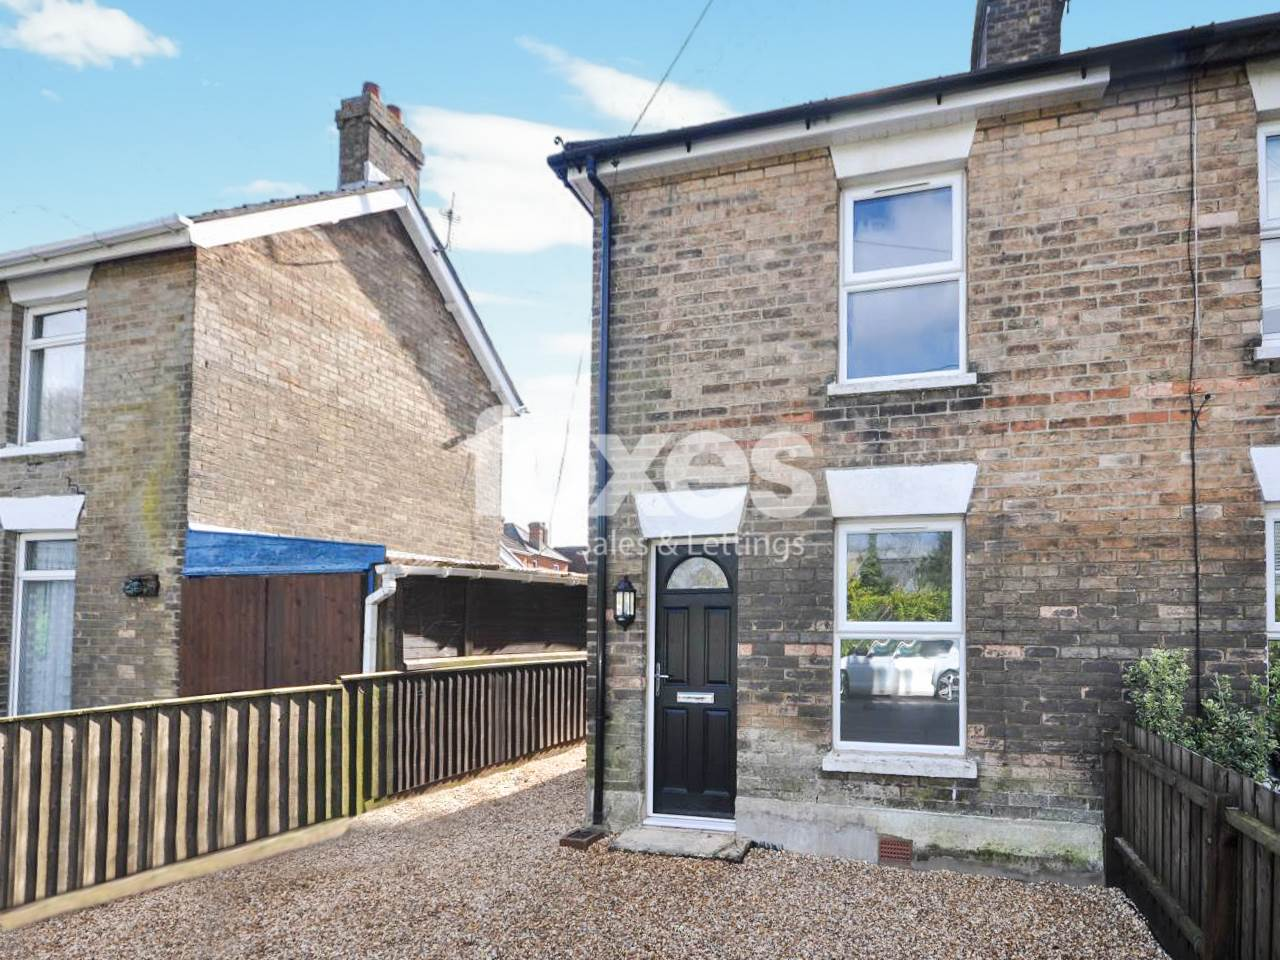 2 bed house to rent in North Road, Boscombe, BH7